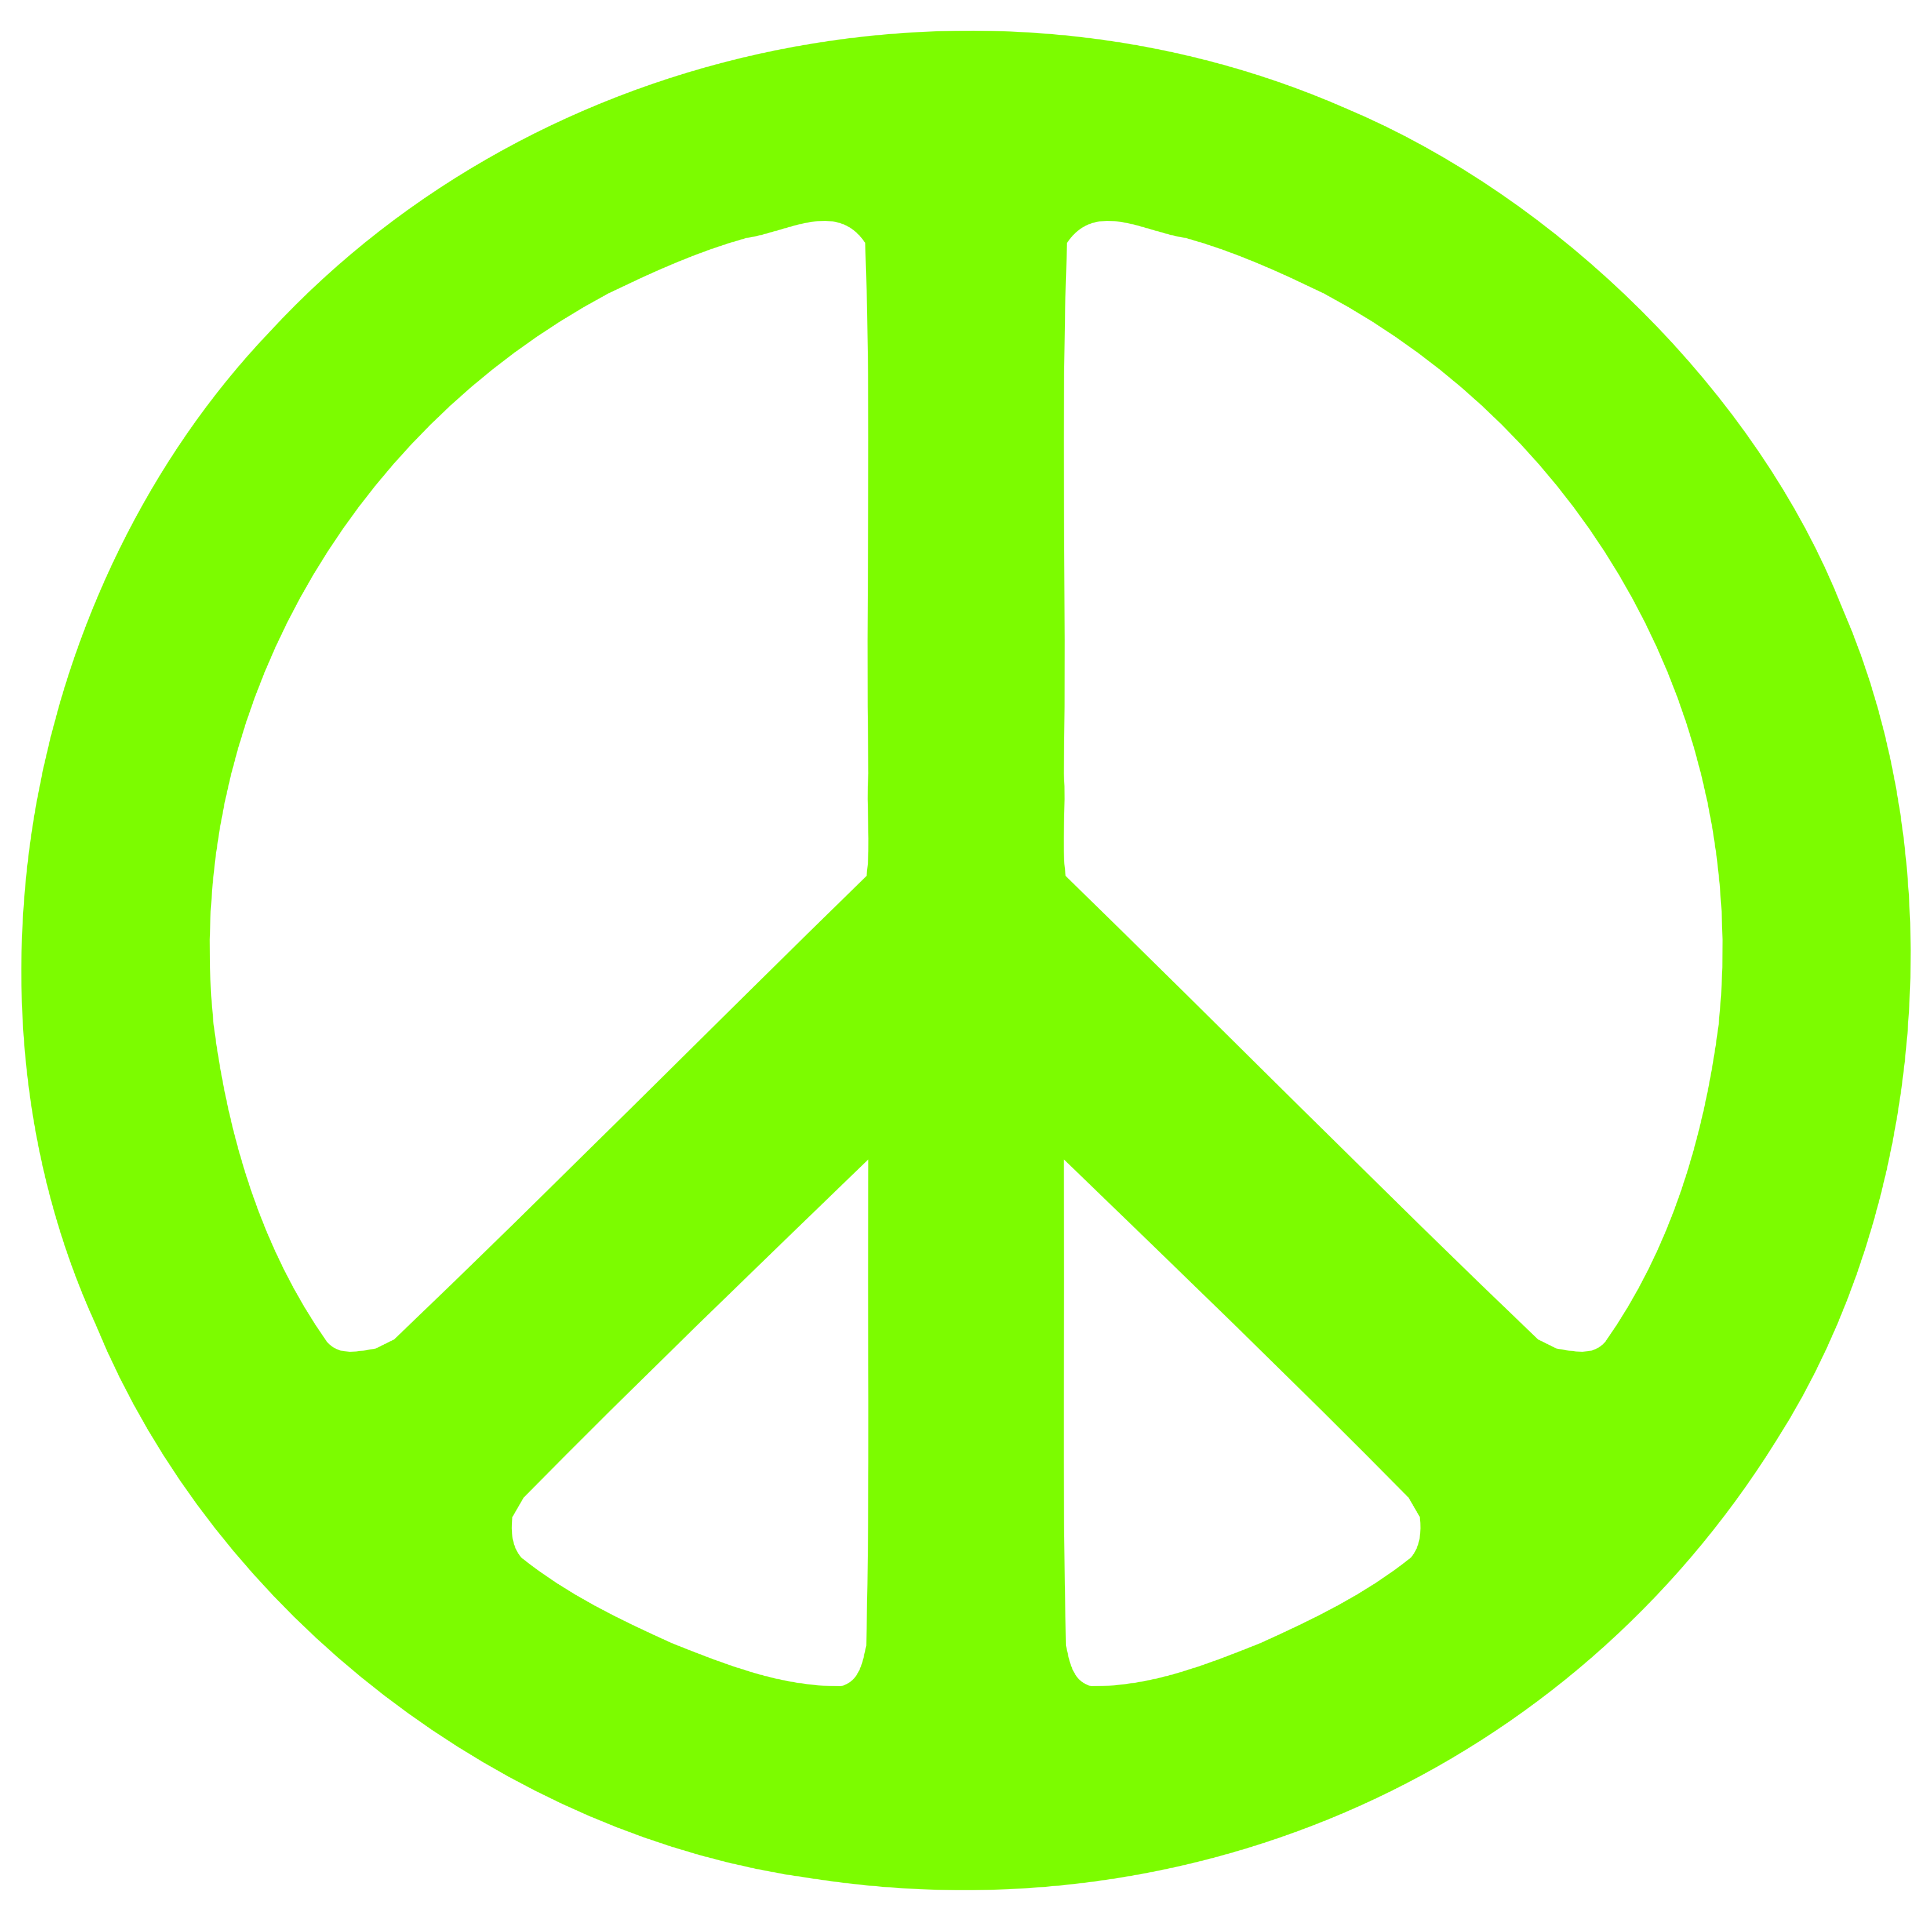 Peace Sign clipart pece Clipart Sign Clipart pink%20peace%20sign%20clipart Images